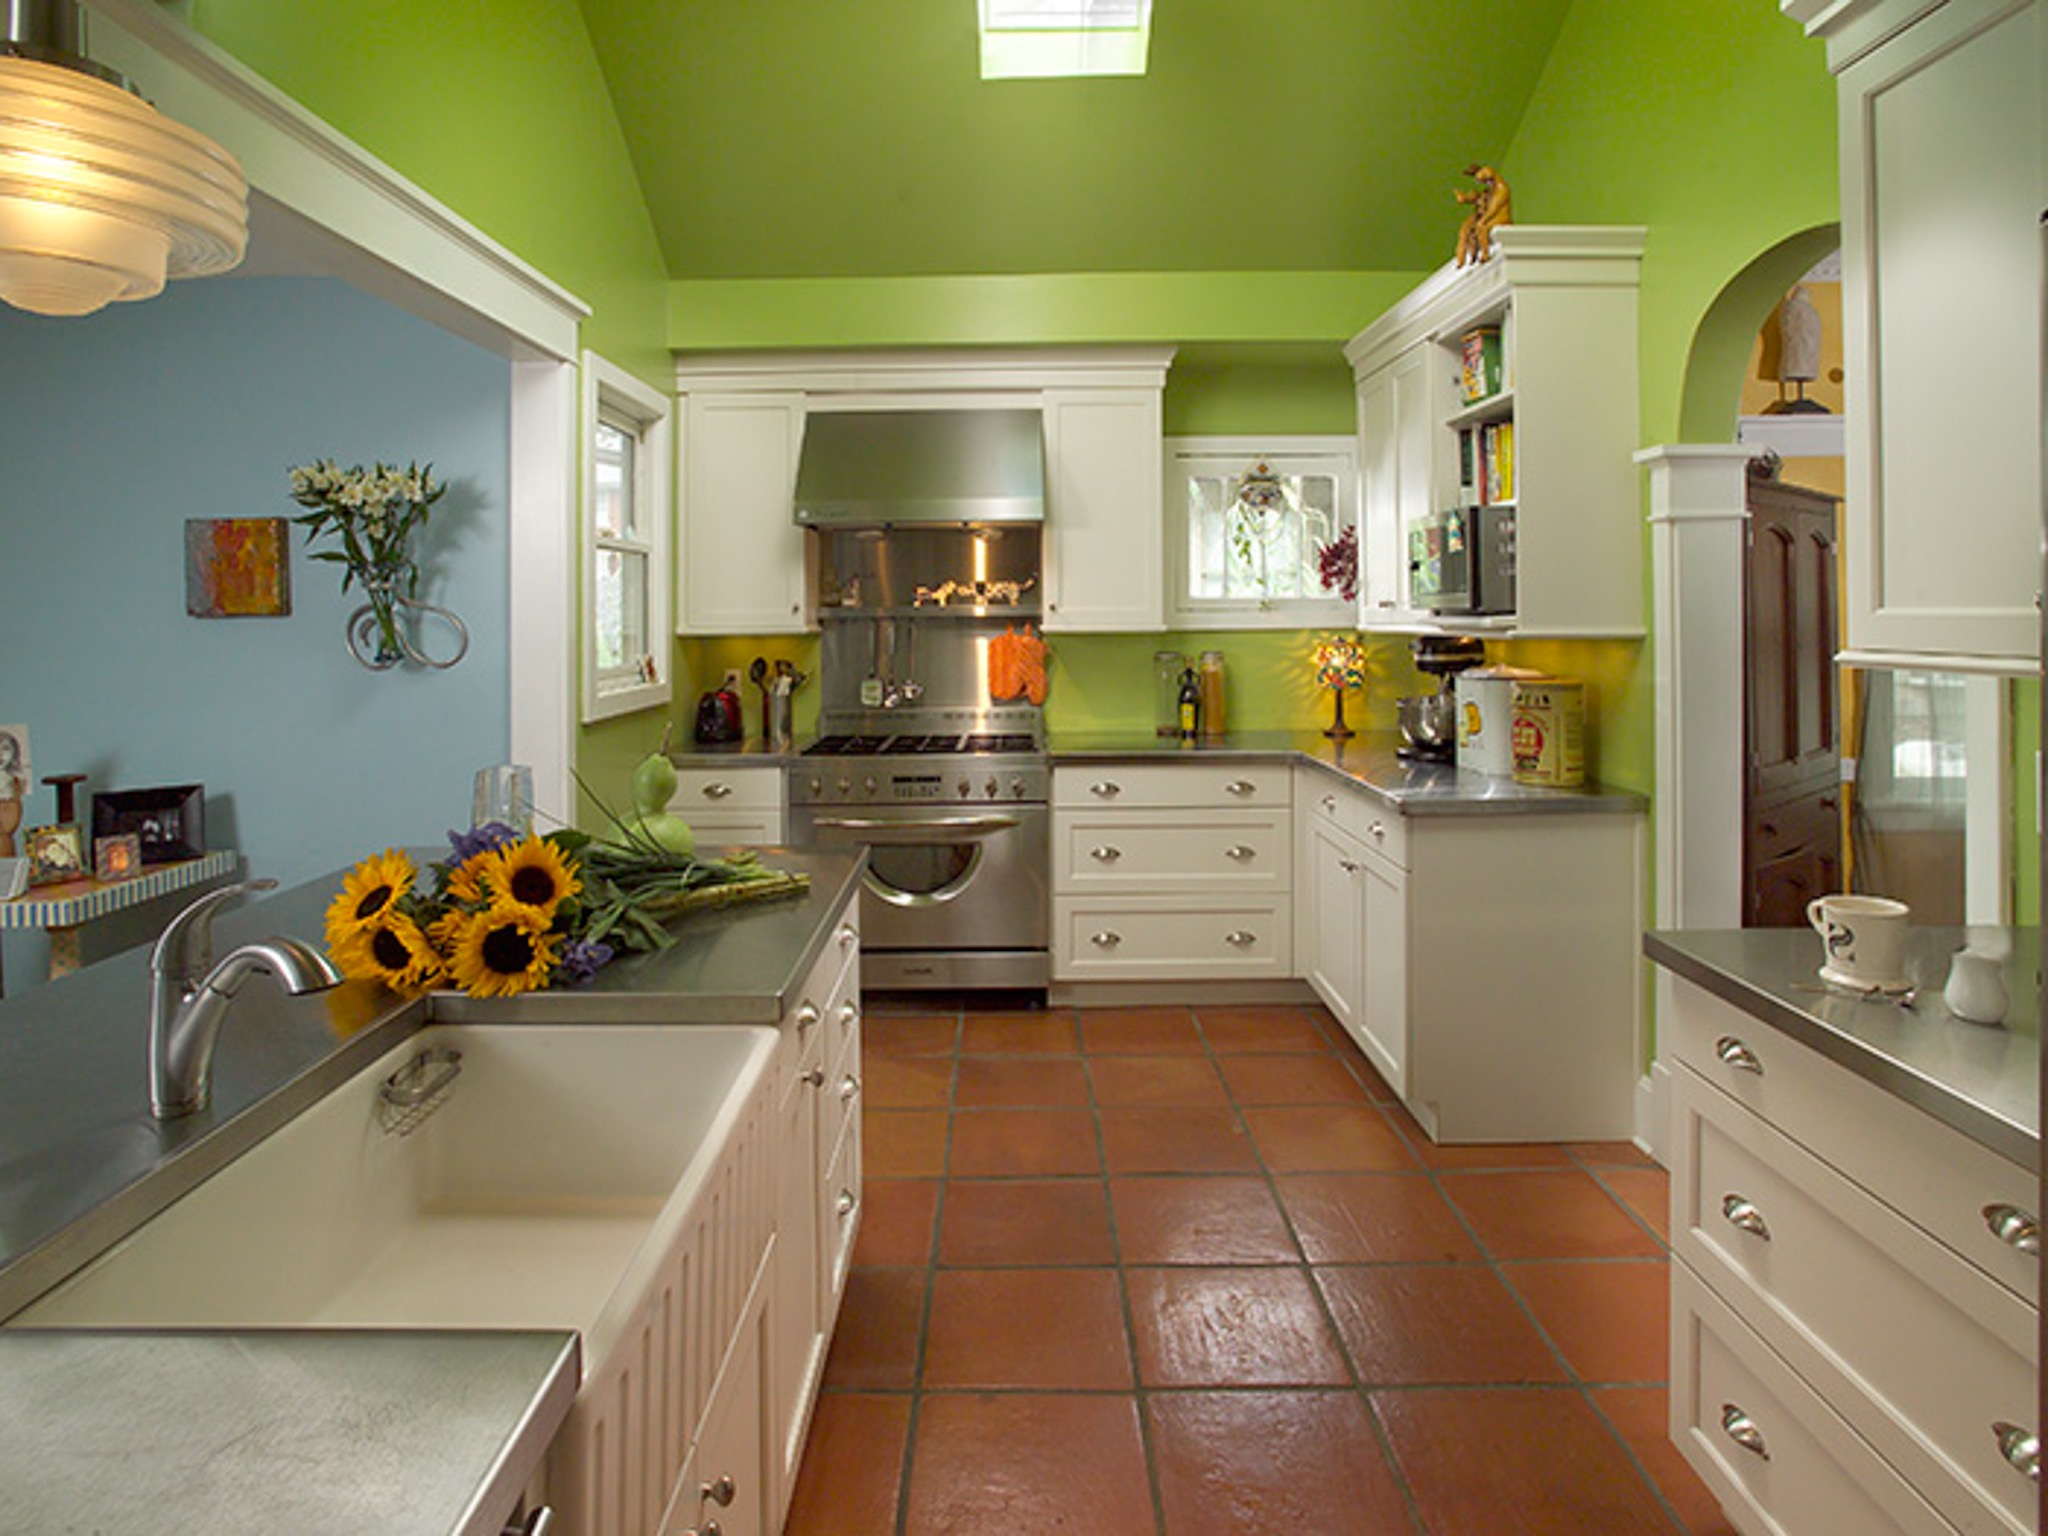 Tropical Kitchen And Laundry Room Interior Combo (Image 7 of 7)